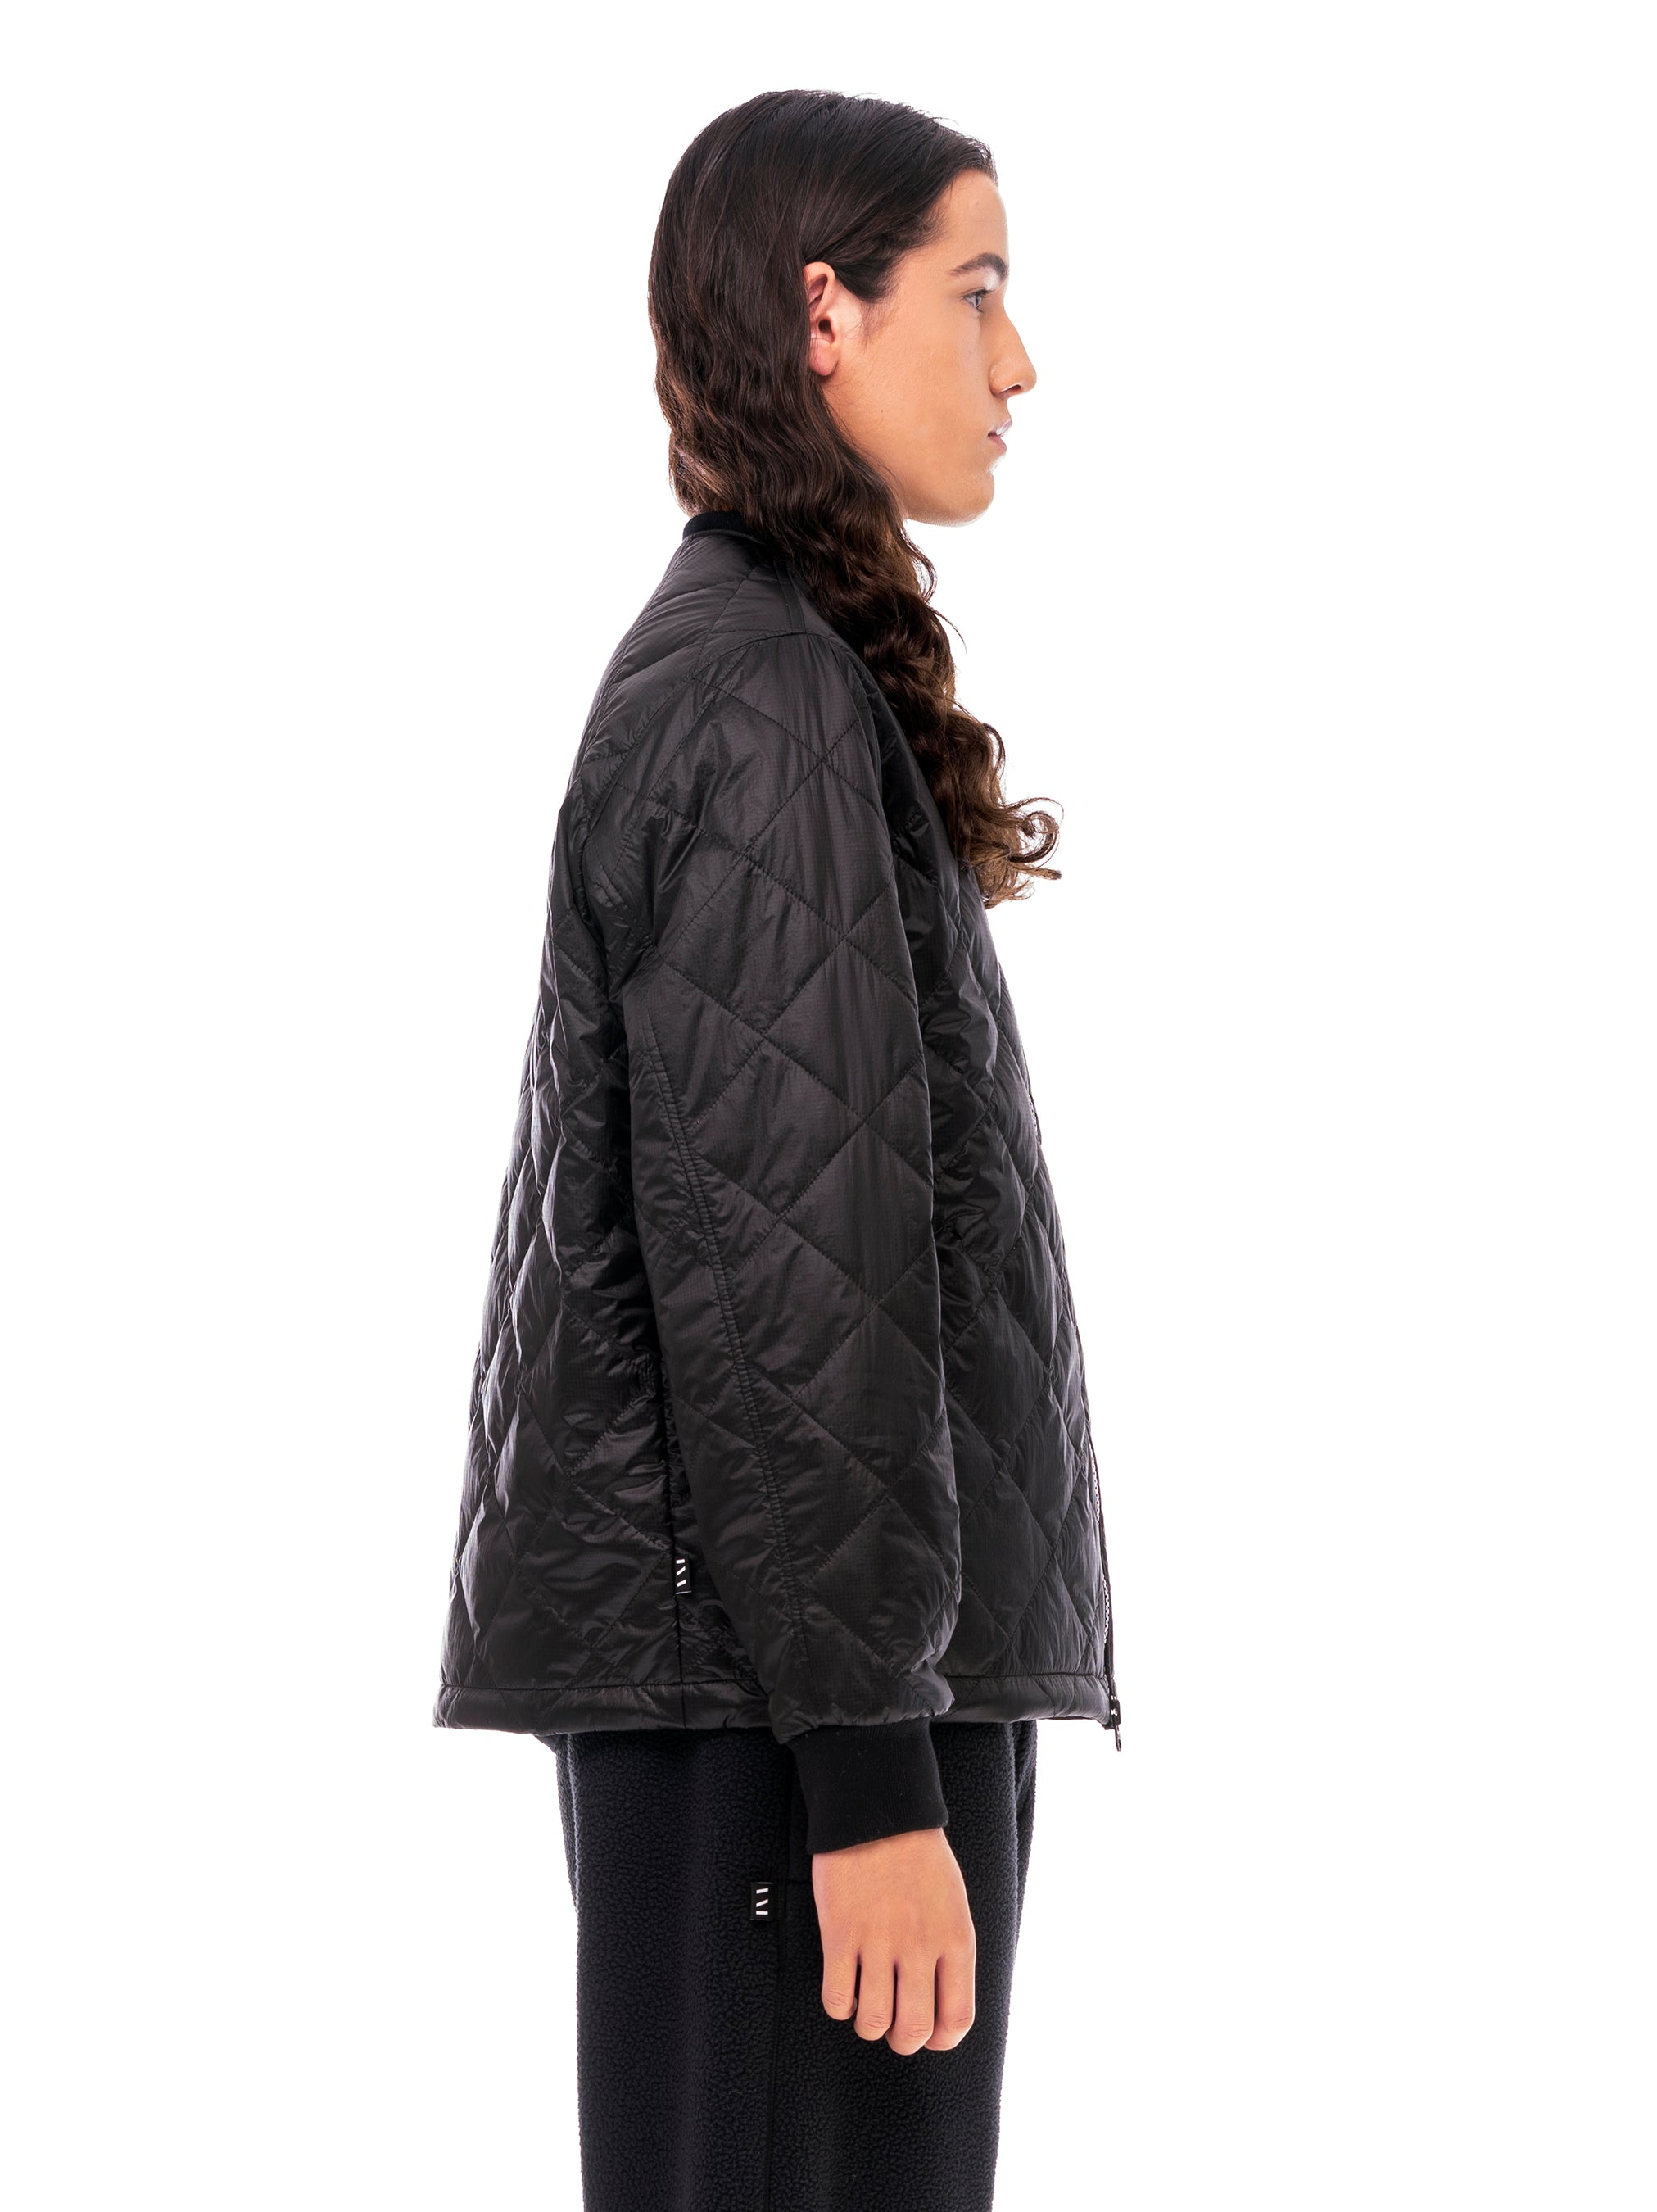 Quilted Through Quilted Bomber - Black [bomber_Vandal], [The Very Warm], [The Very Warm]